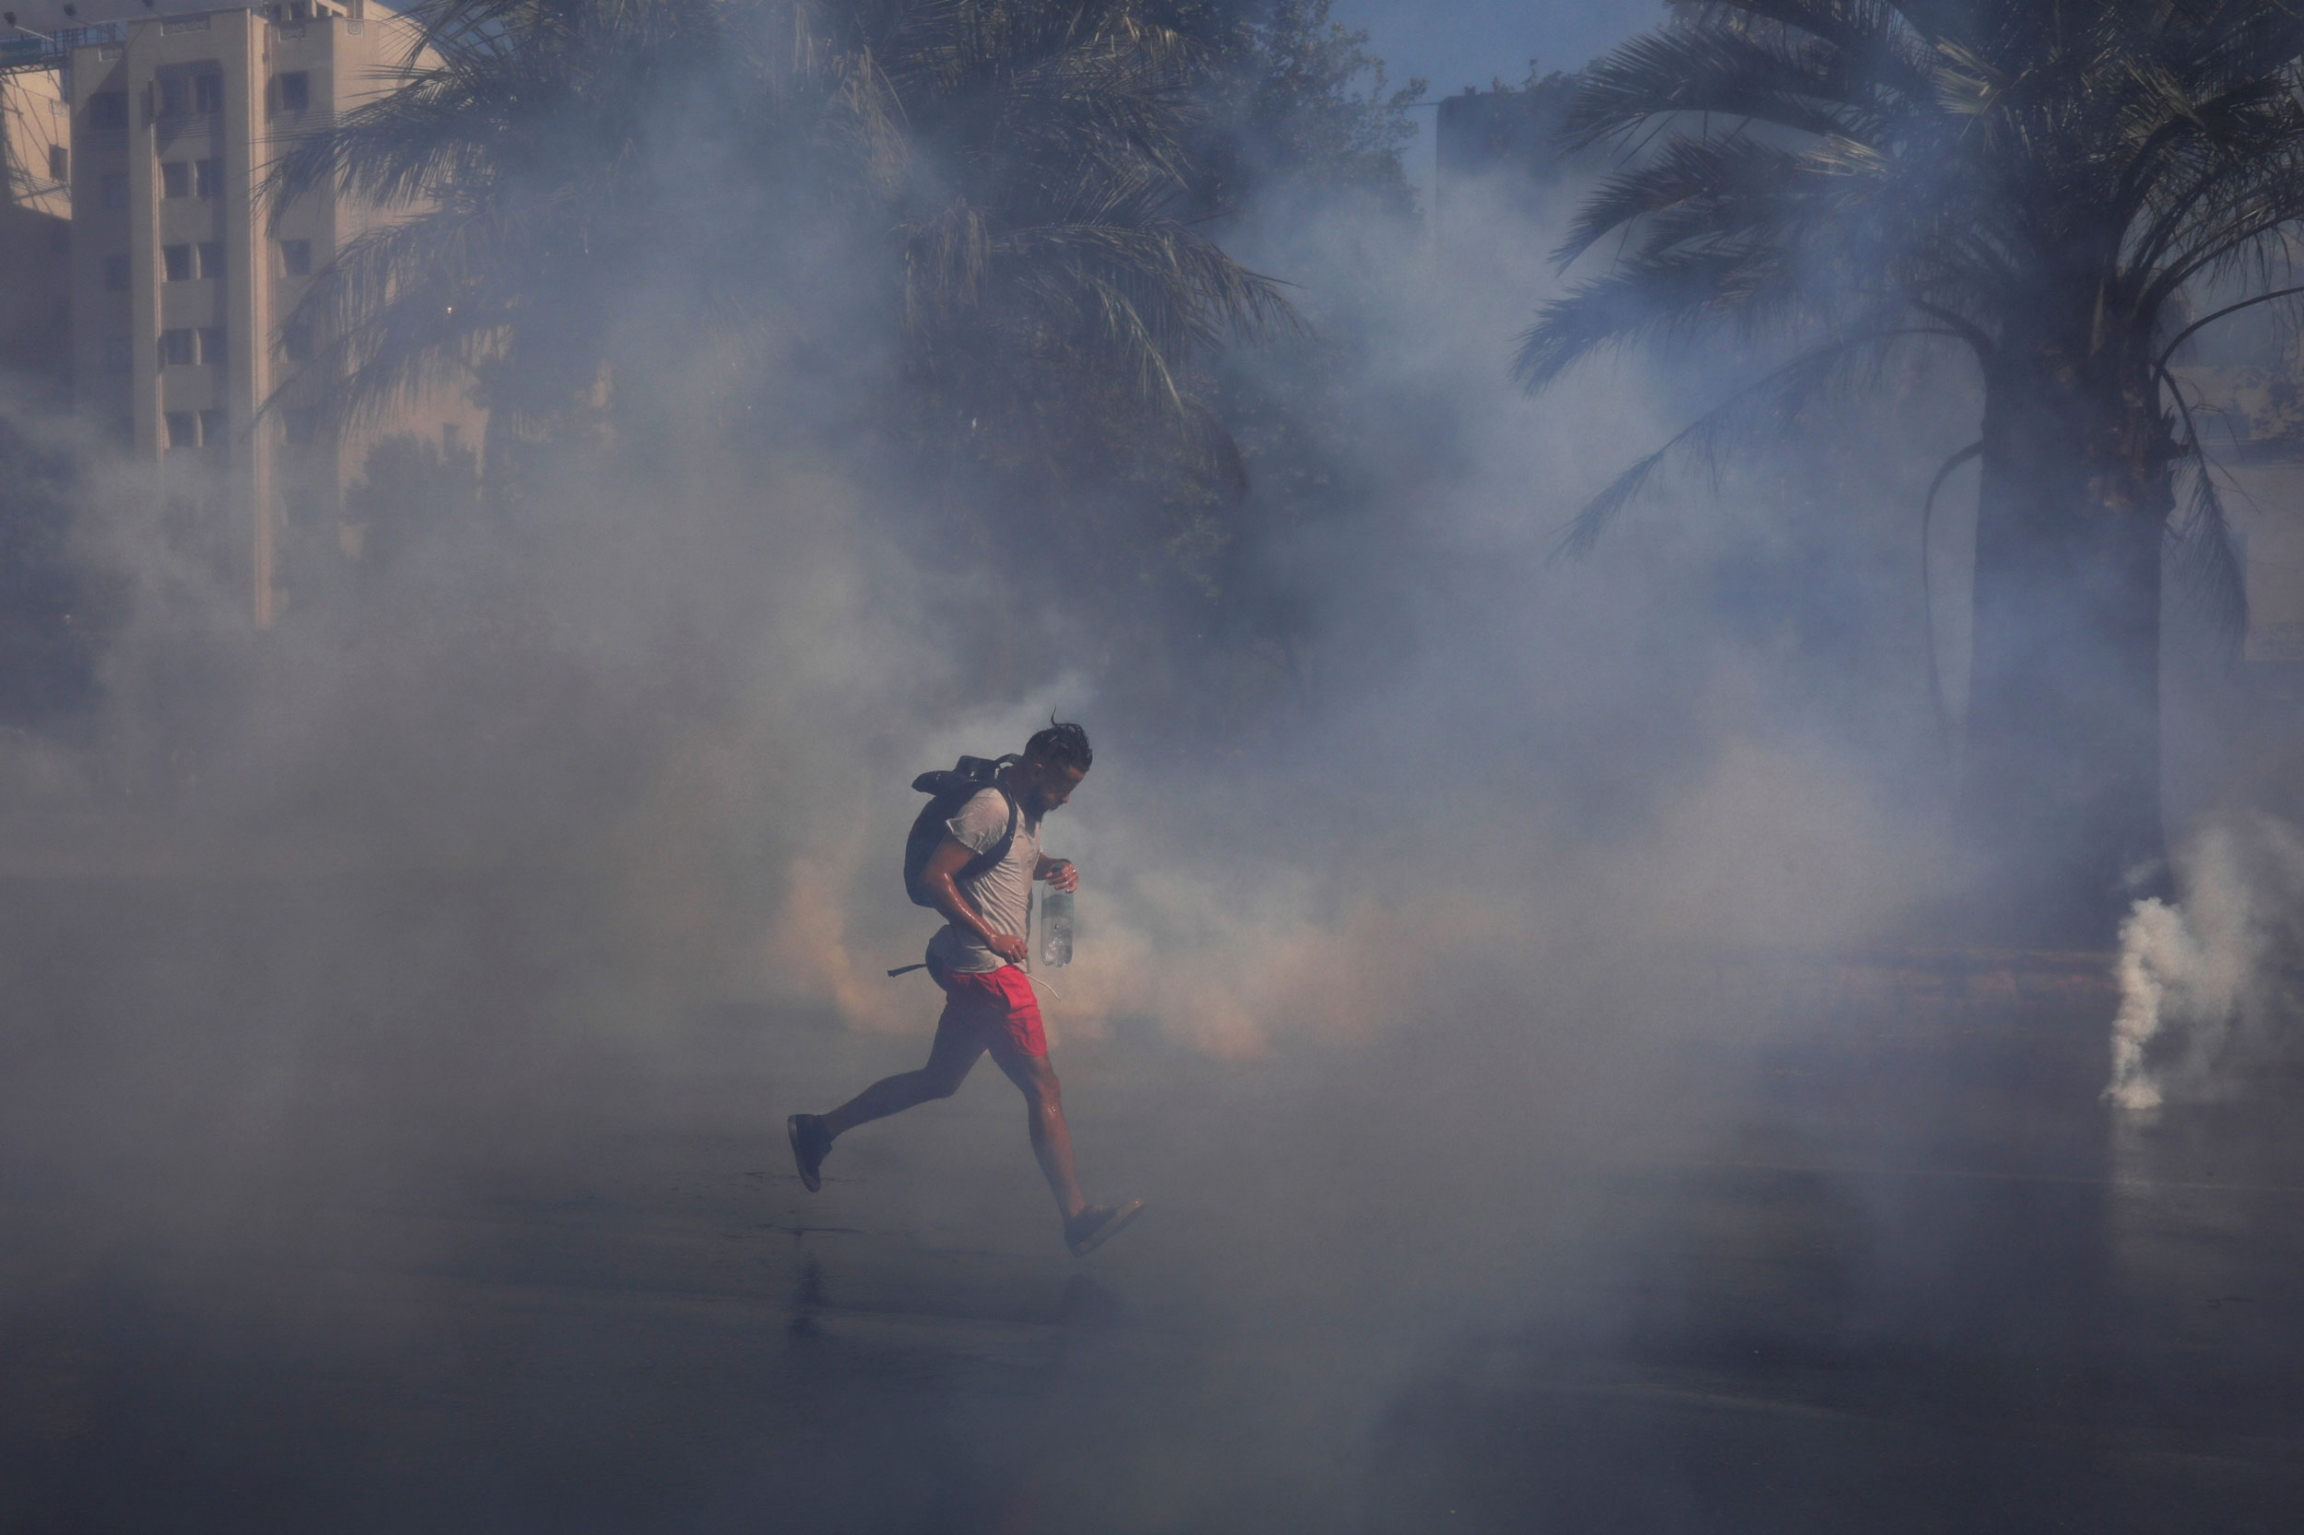 A demonstrator wearing red shorts and carrying a backpack, runs amid tear gas.